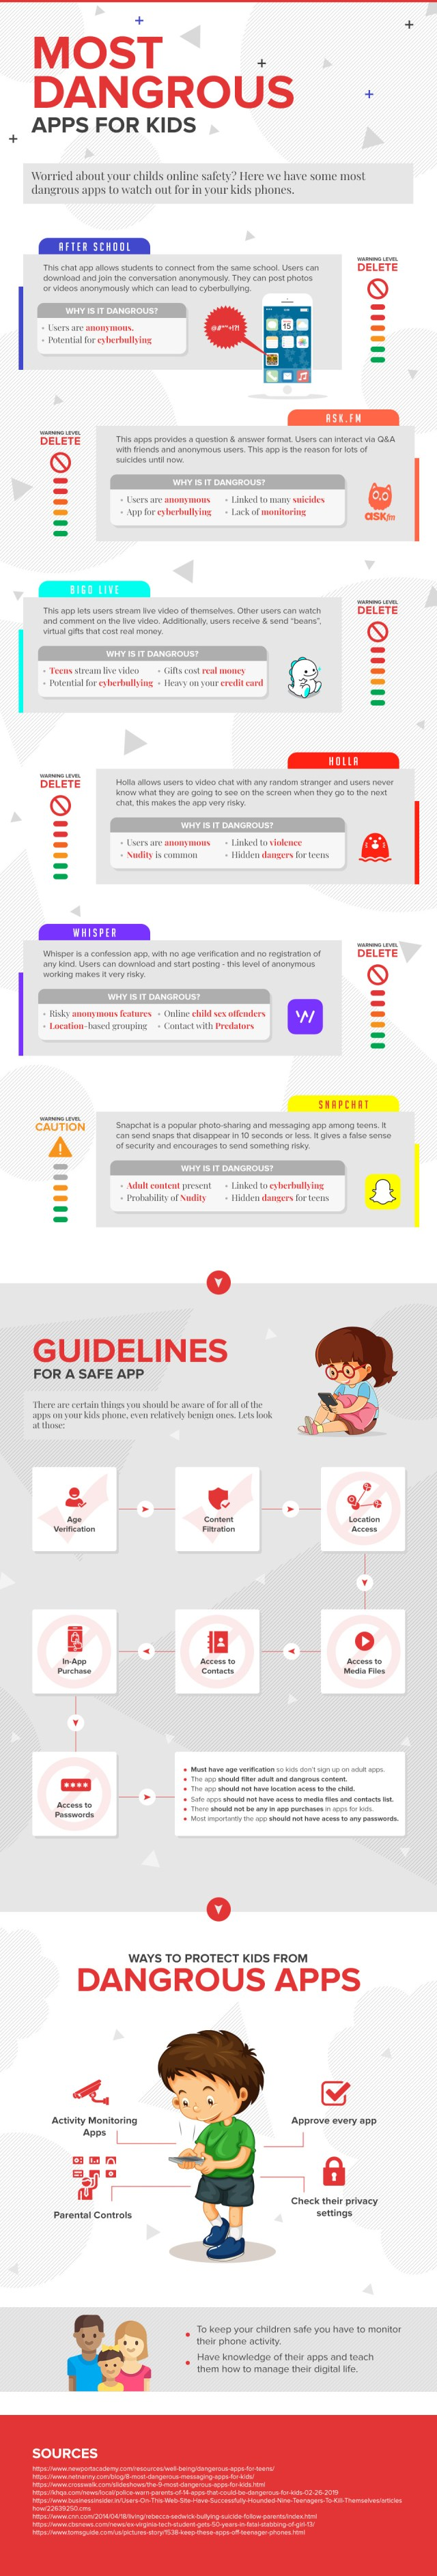 most-dangerous-apps-for-kids